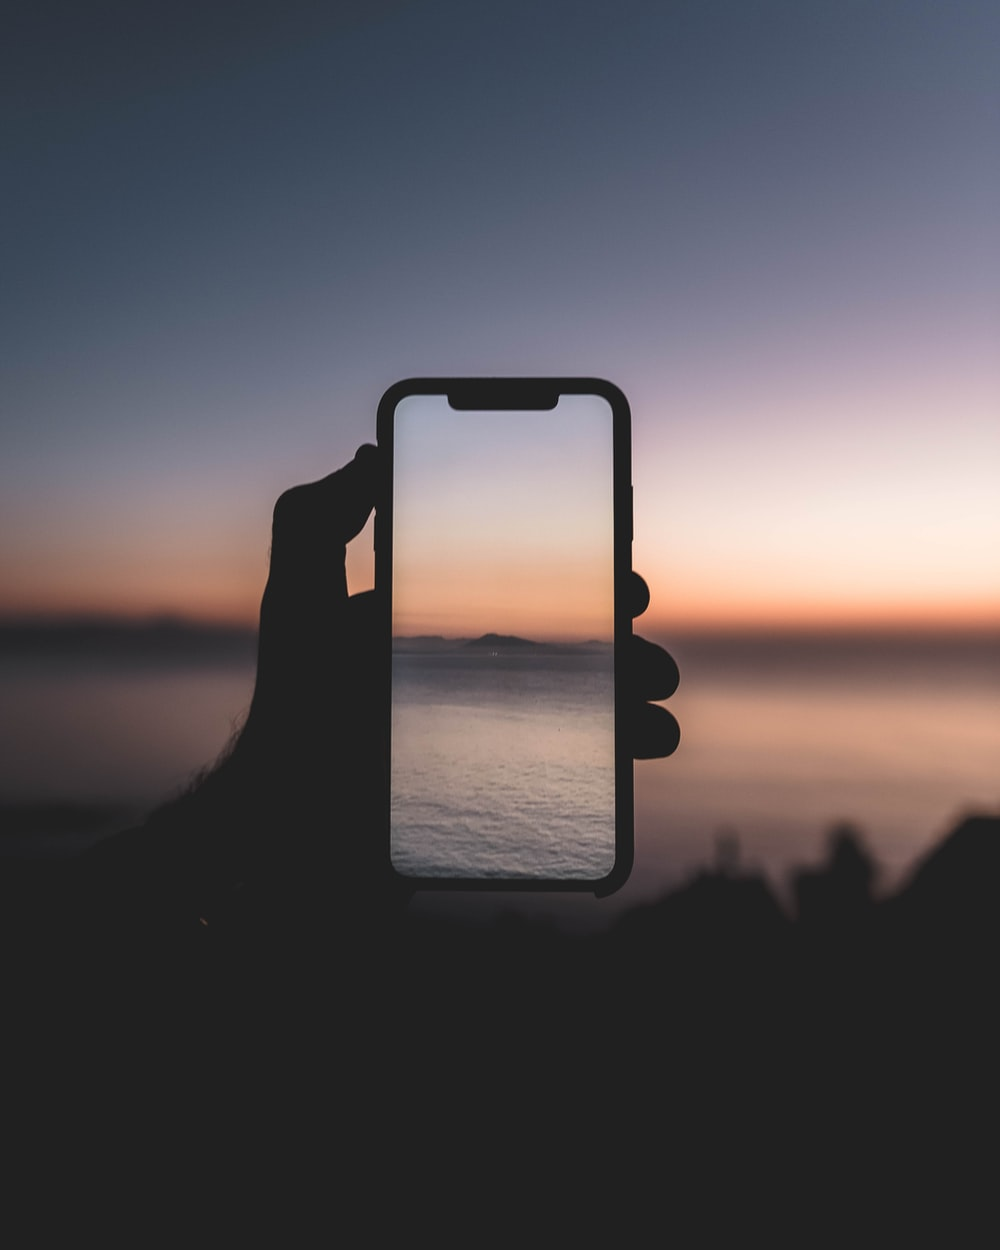 silhouette of person taking picture of body of water